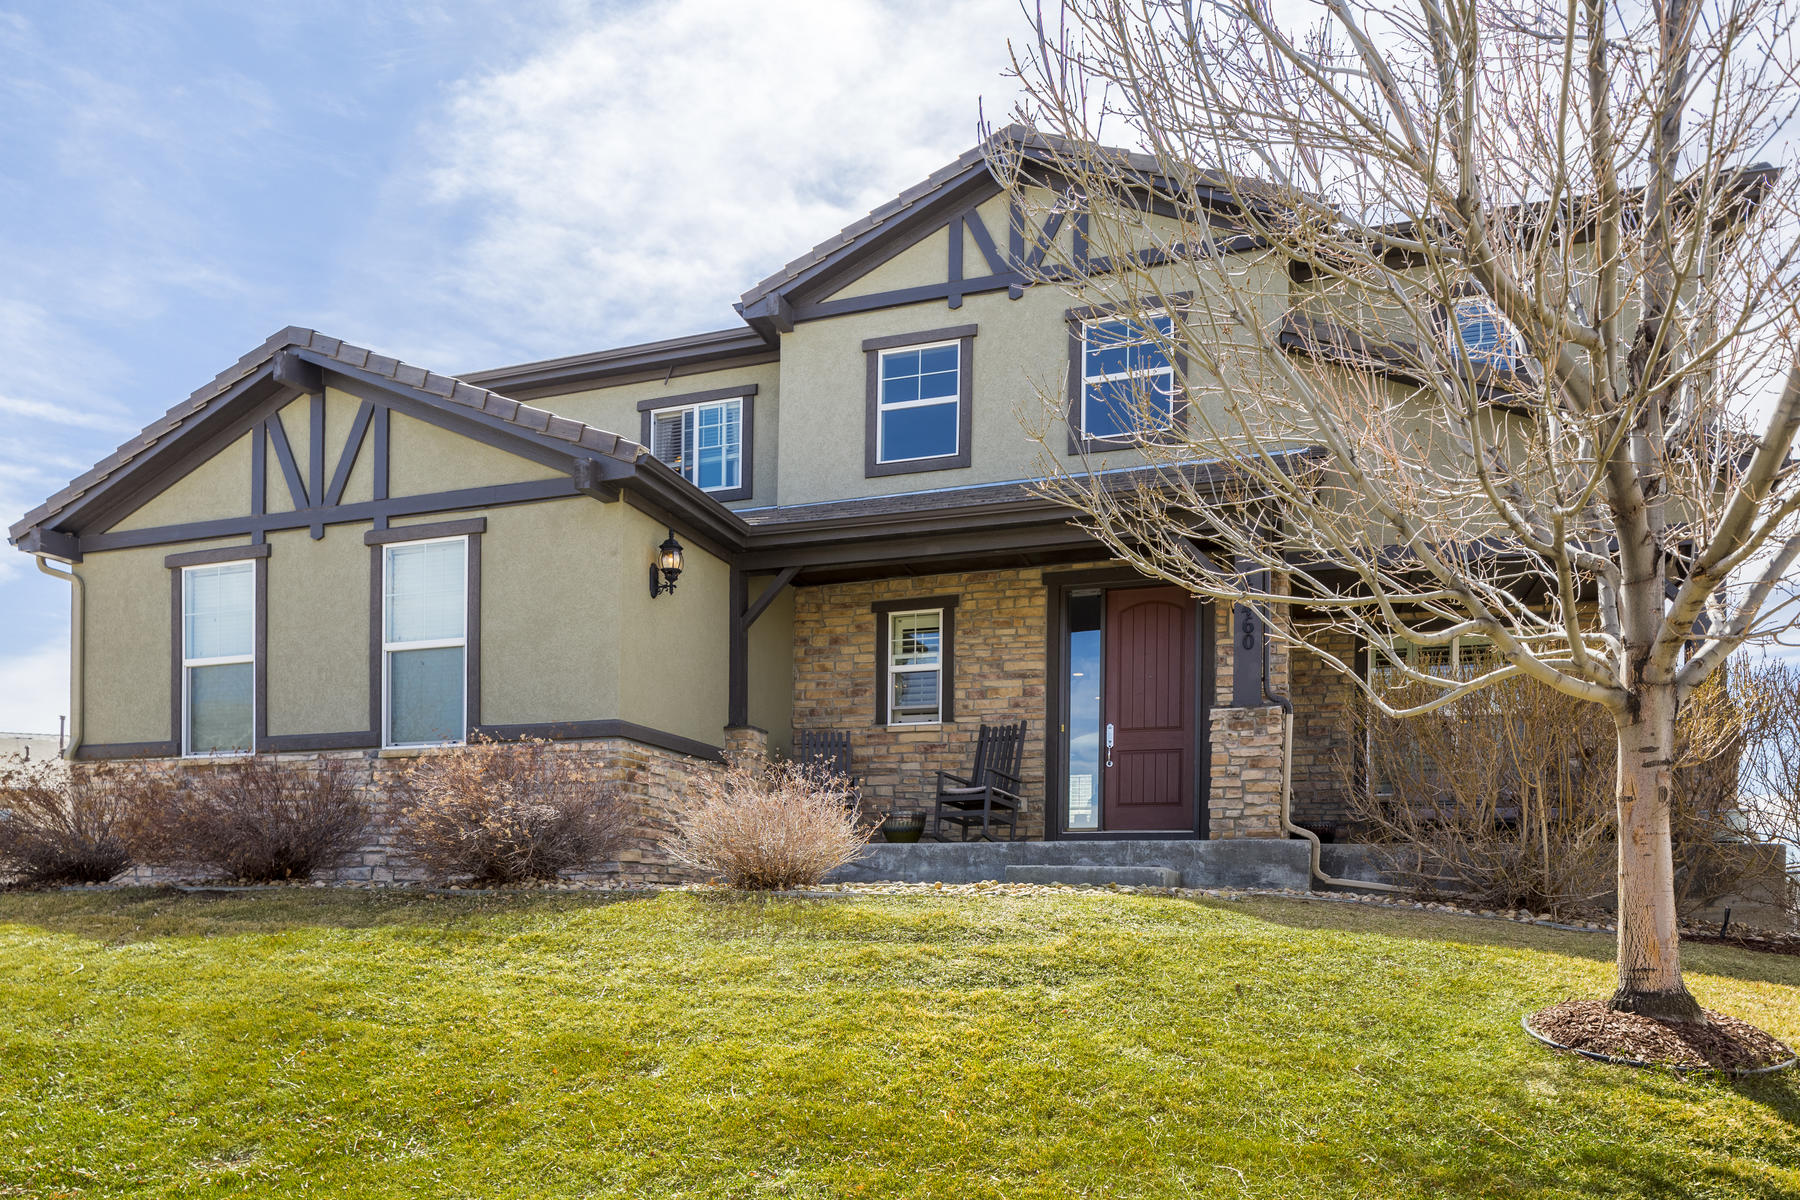 Single Family Home for Active at Amazing Opportunity to Own in Anthem Highlands 16460 Avalanche Run Broomfield, Colorado 80023 United States